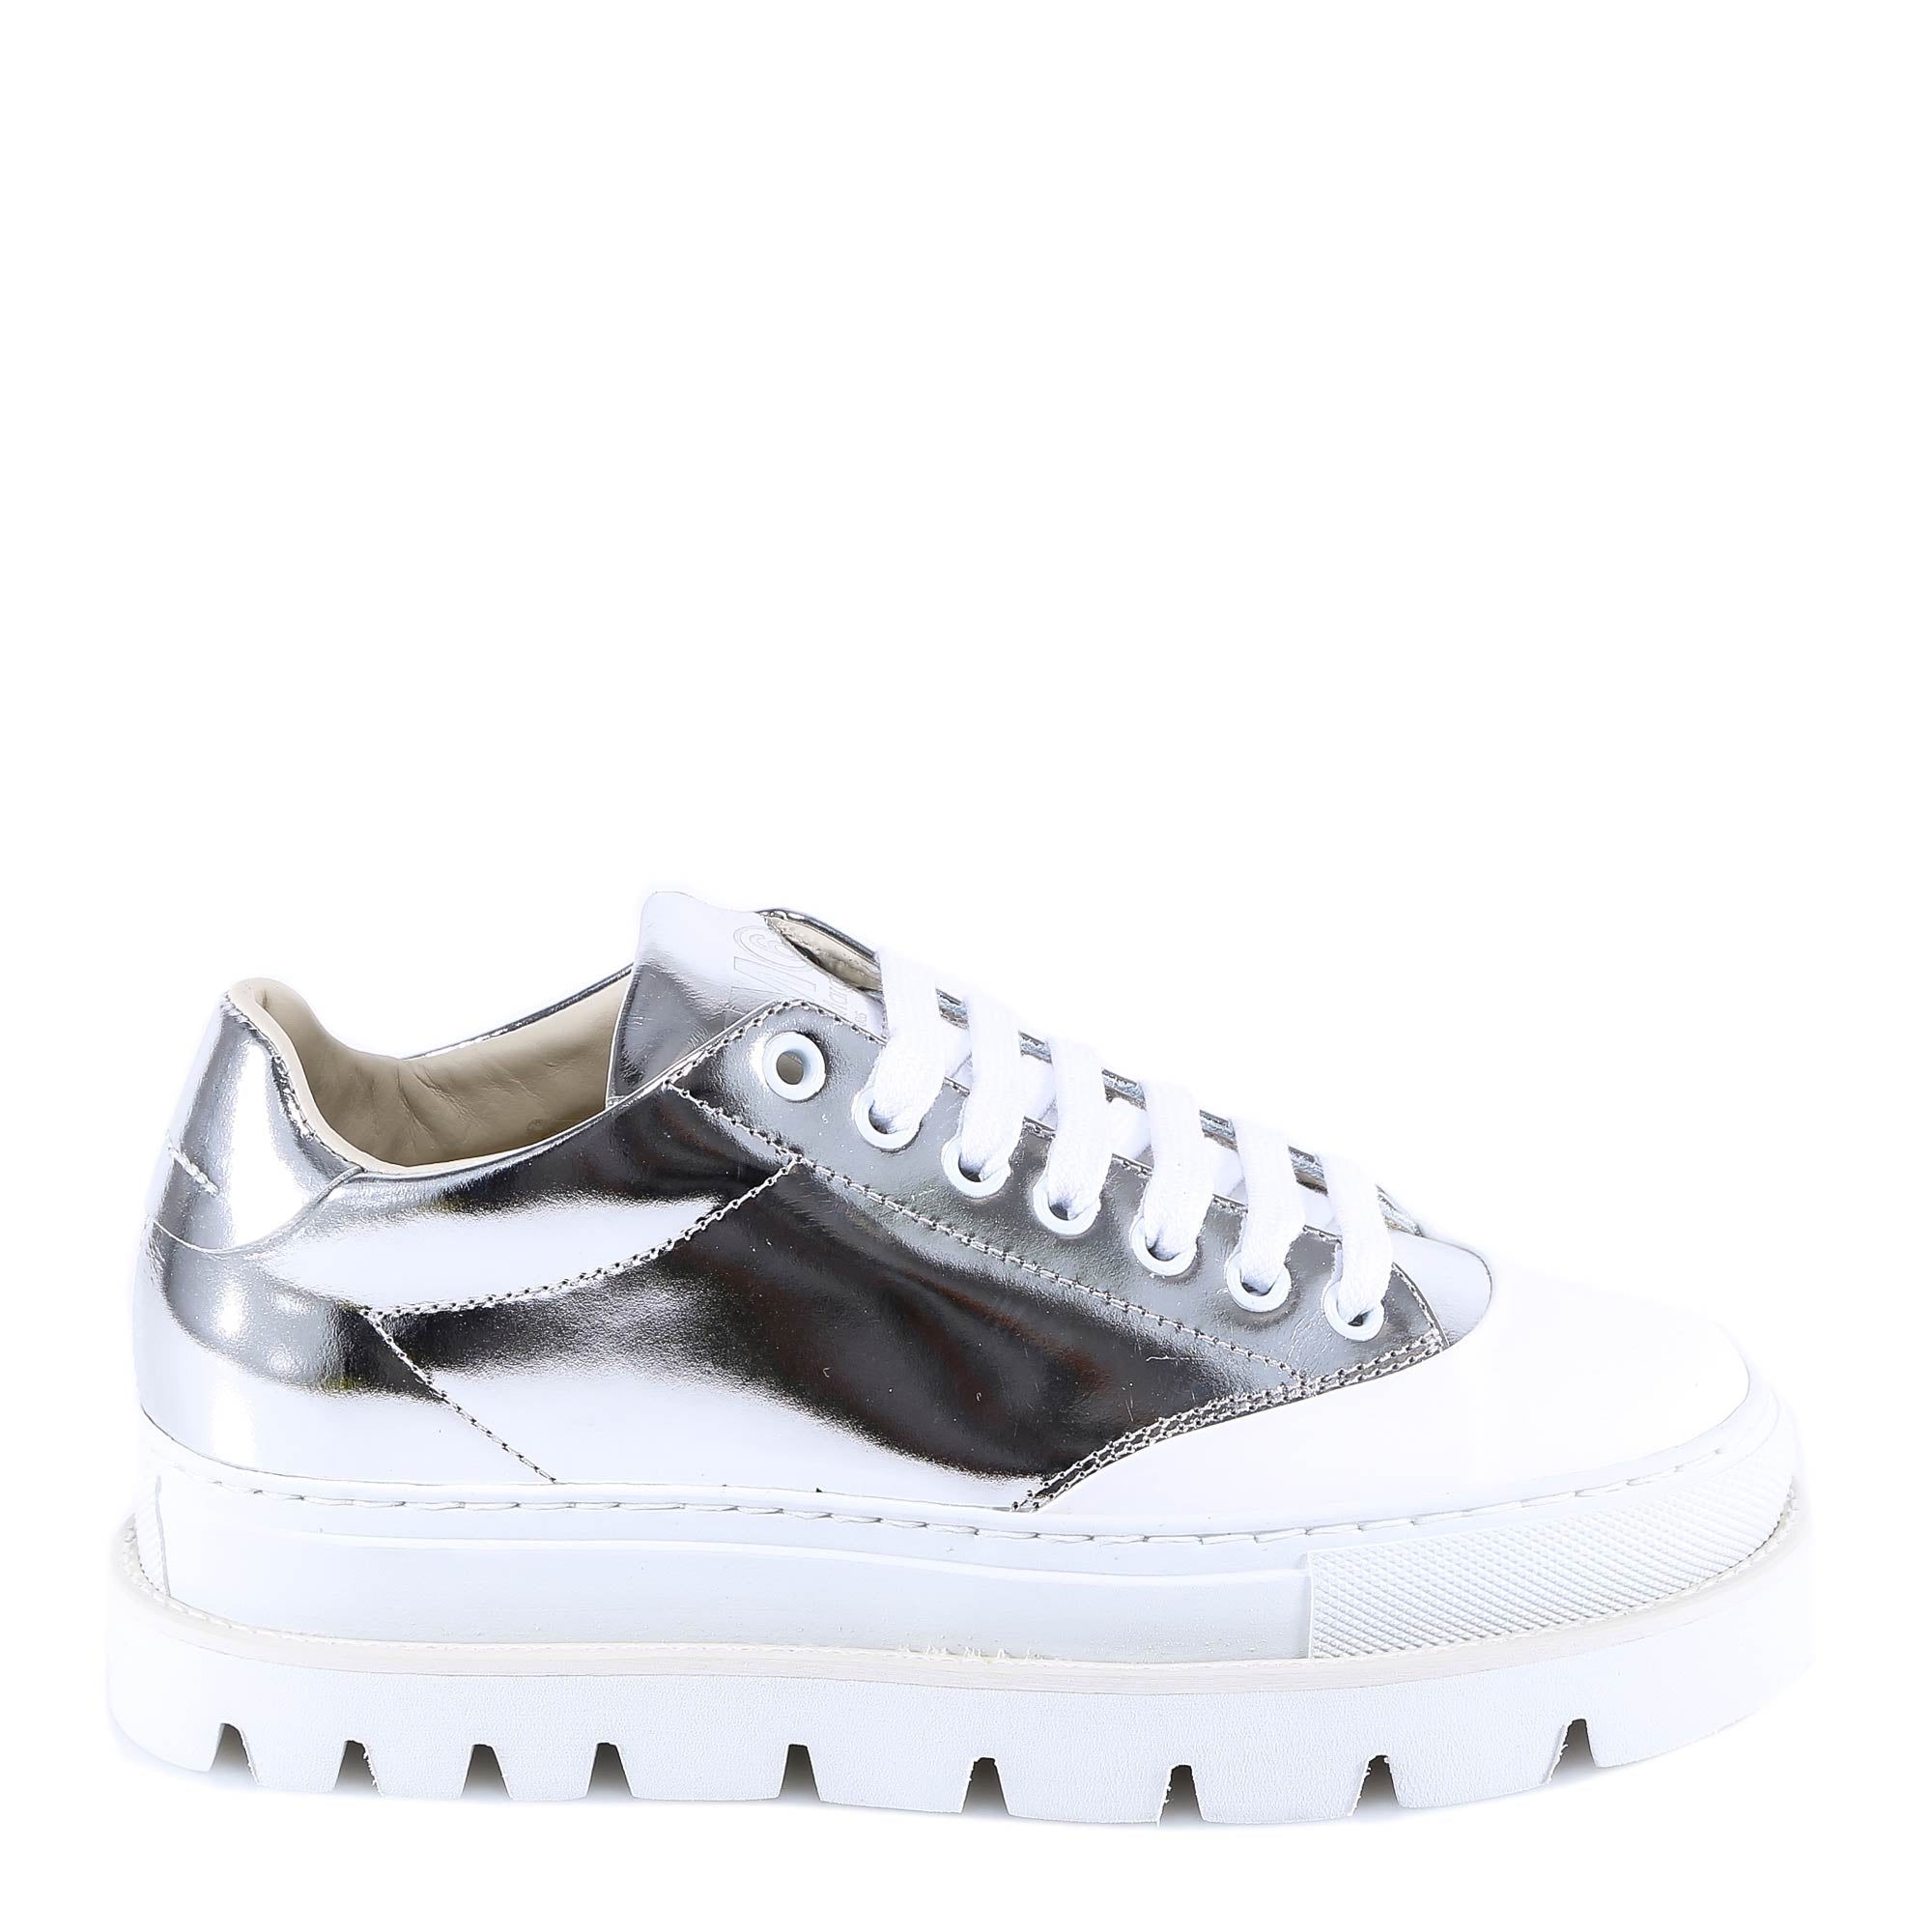 MM6 MAISON MARGIELA PLATFORM SHOES